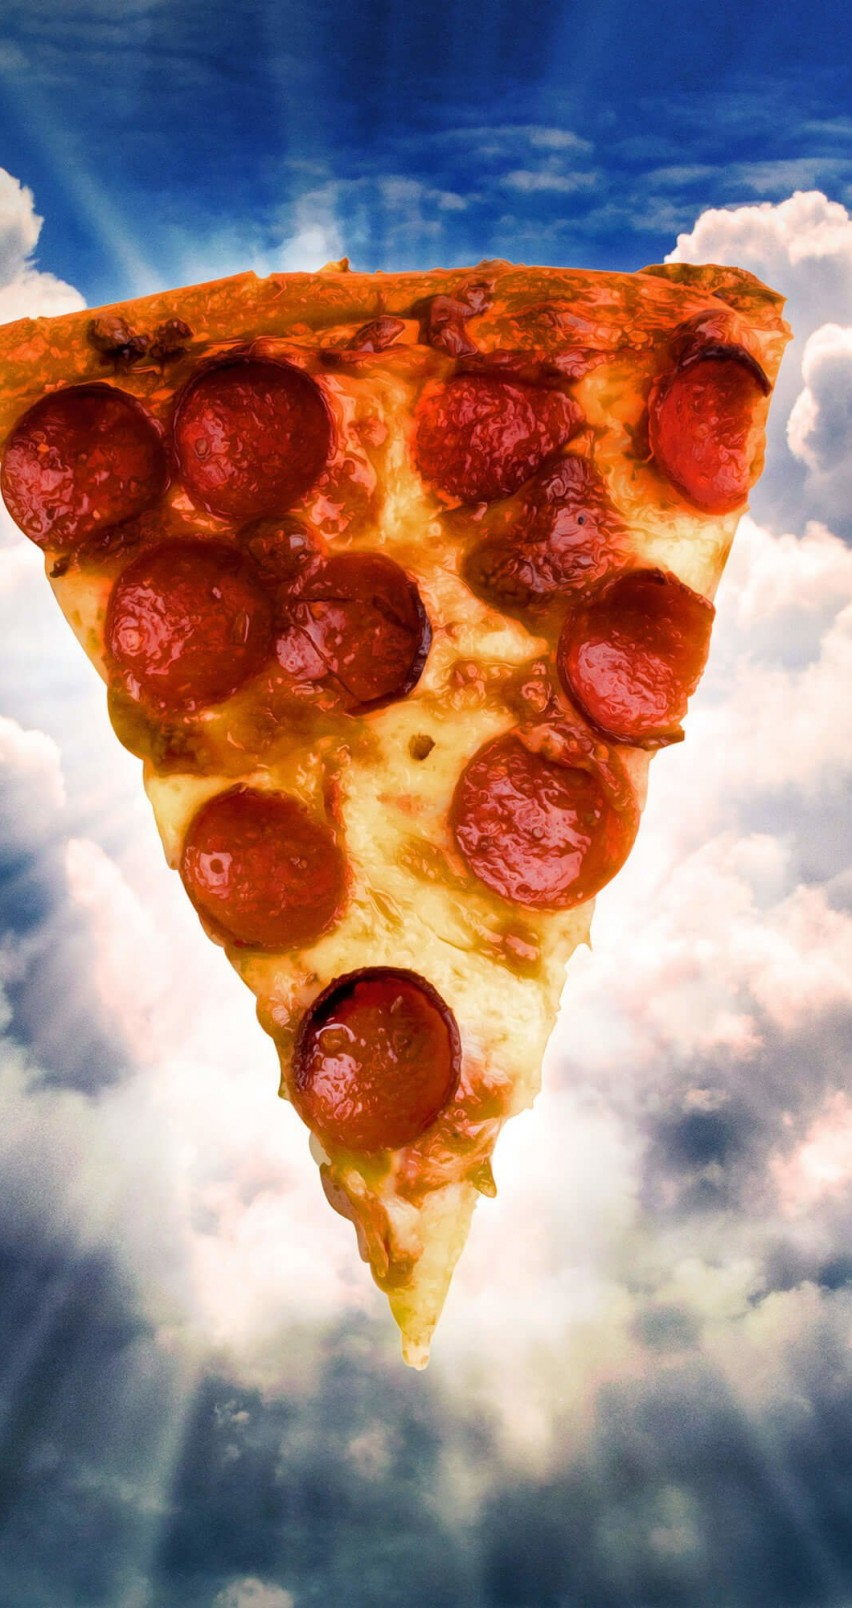 Holy Pizza Wallpaper for Apple iPhone 6 / 6s